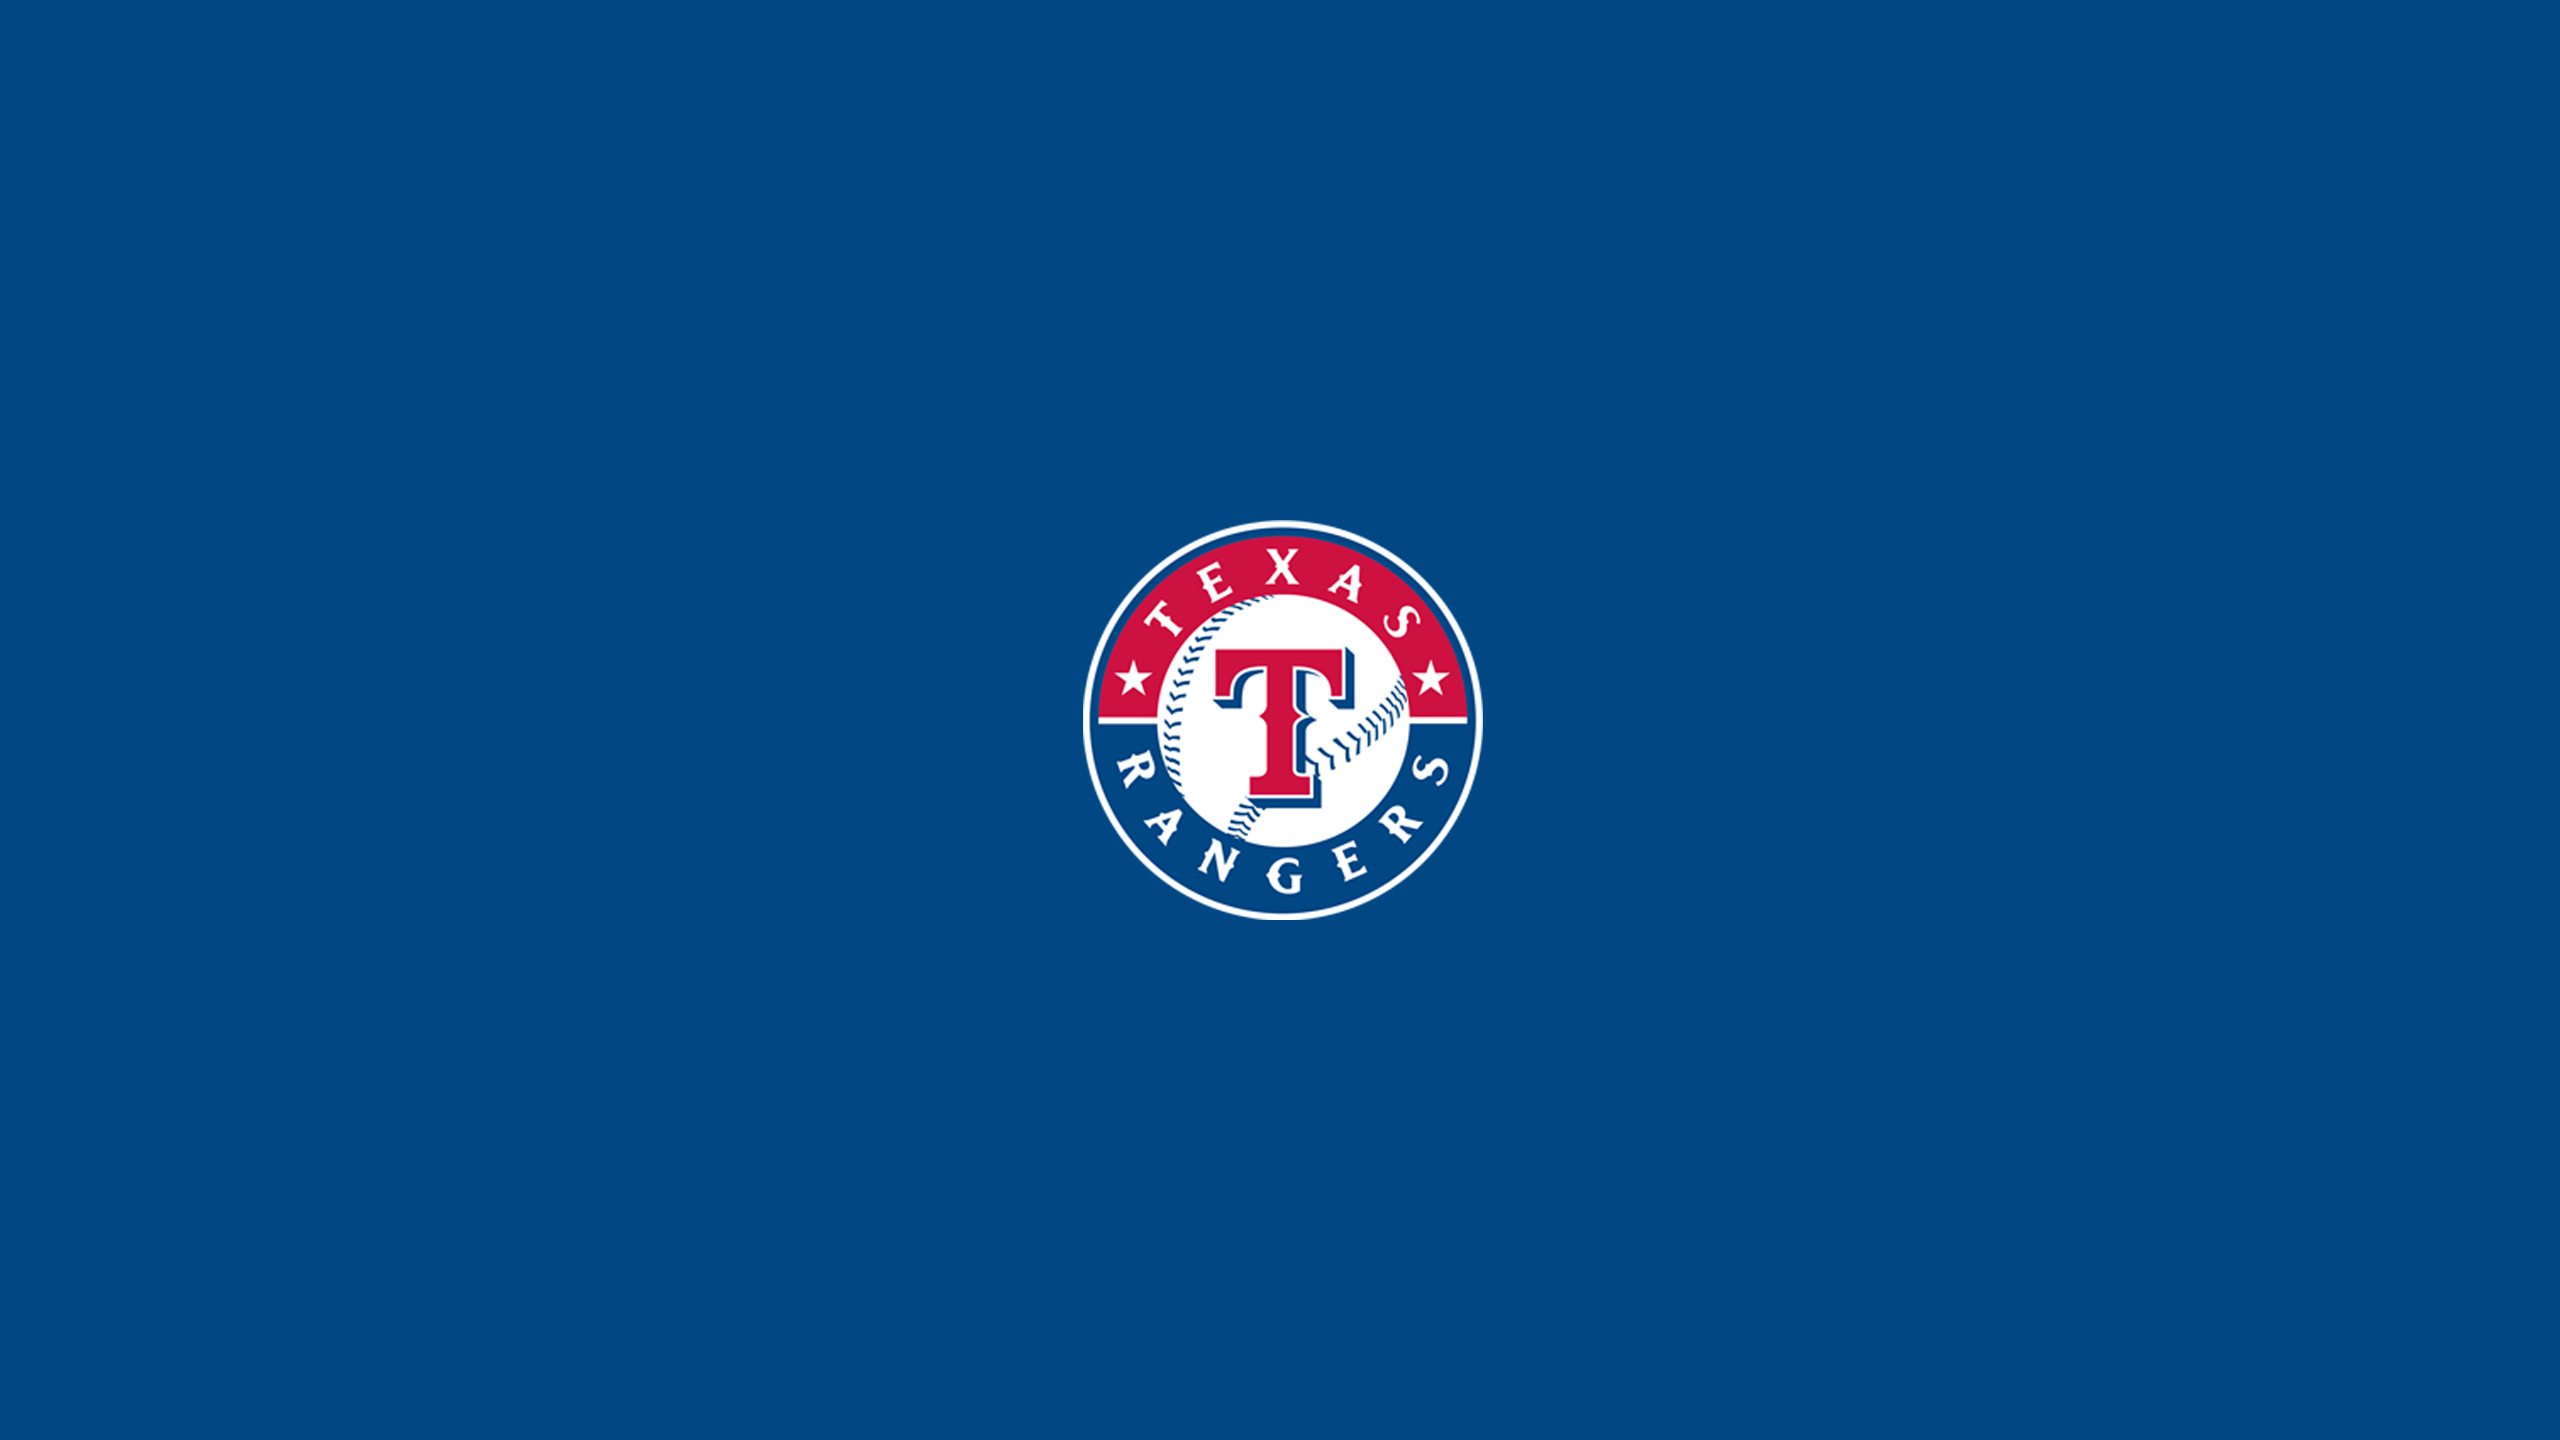 texas rangers wallpaper - photo #7